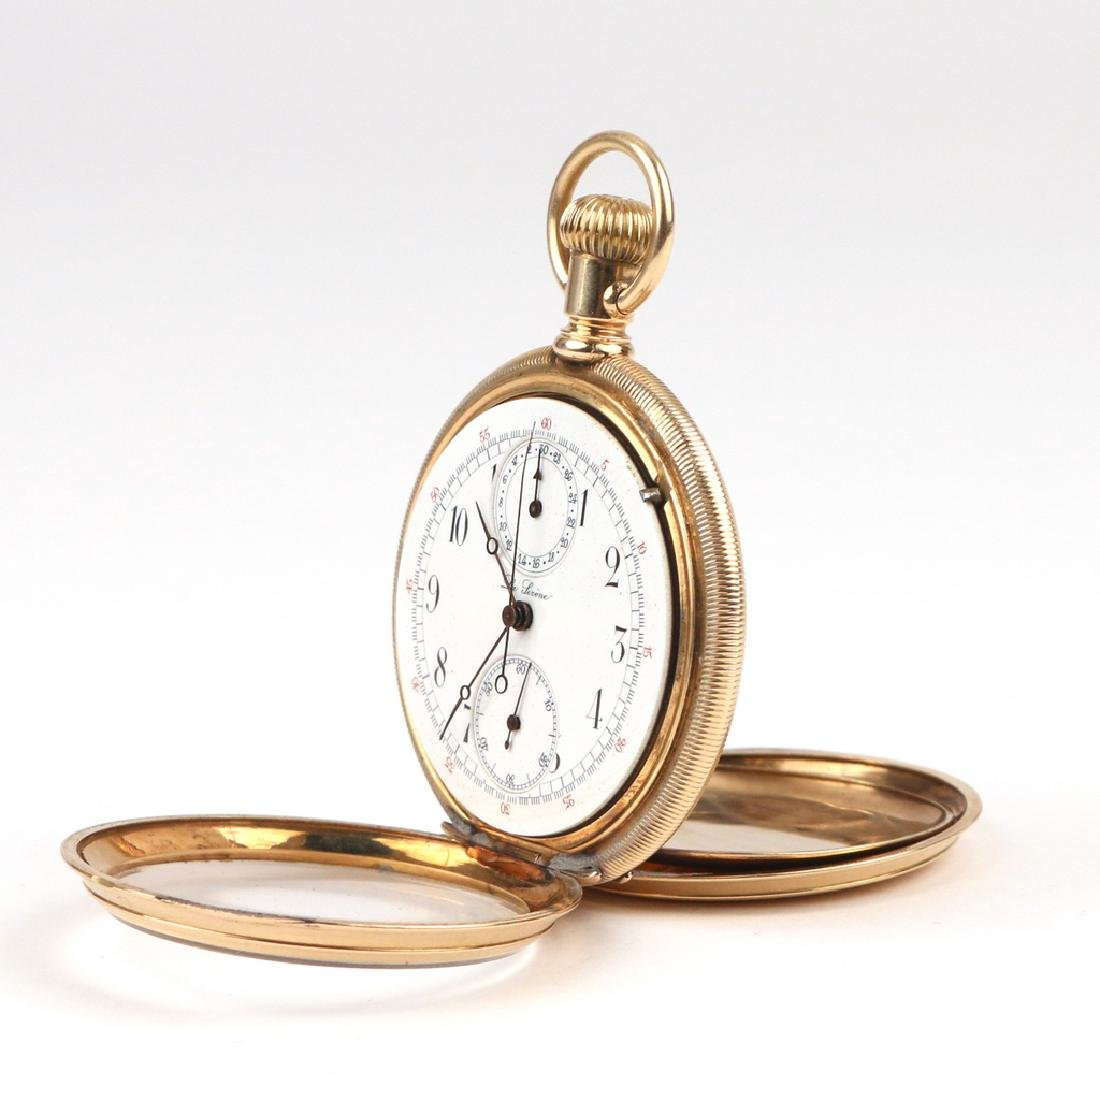 SWISS 'LA SIRENE' GOLD CHRONOGRAPH POCKETWATCH - 5